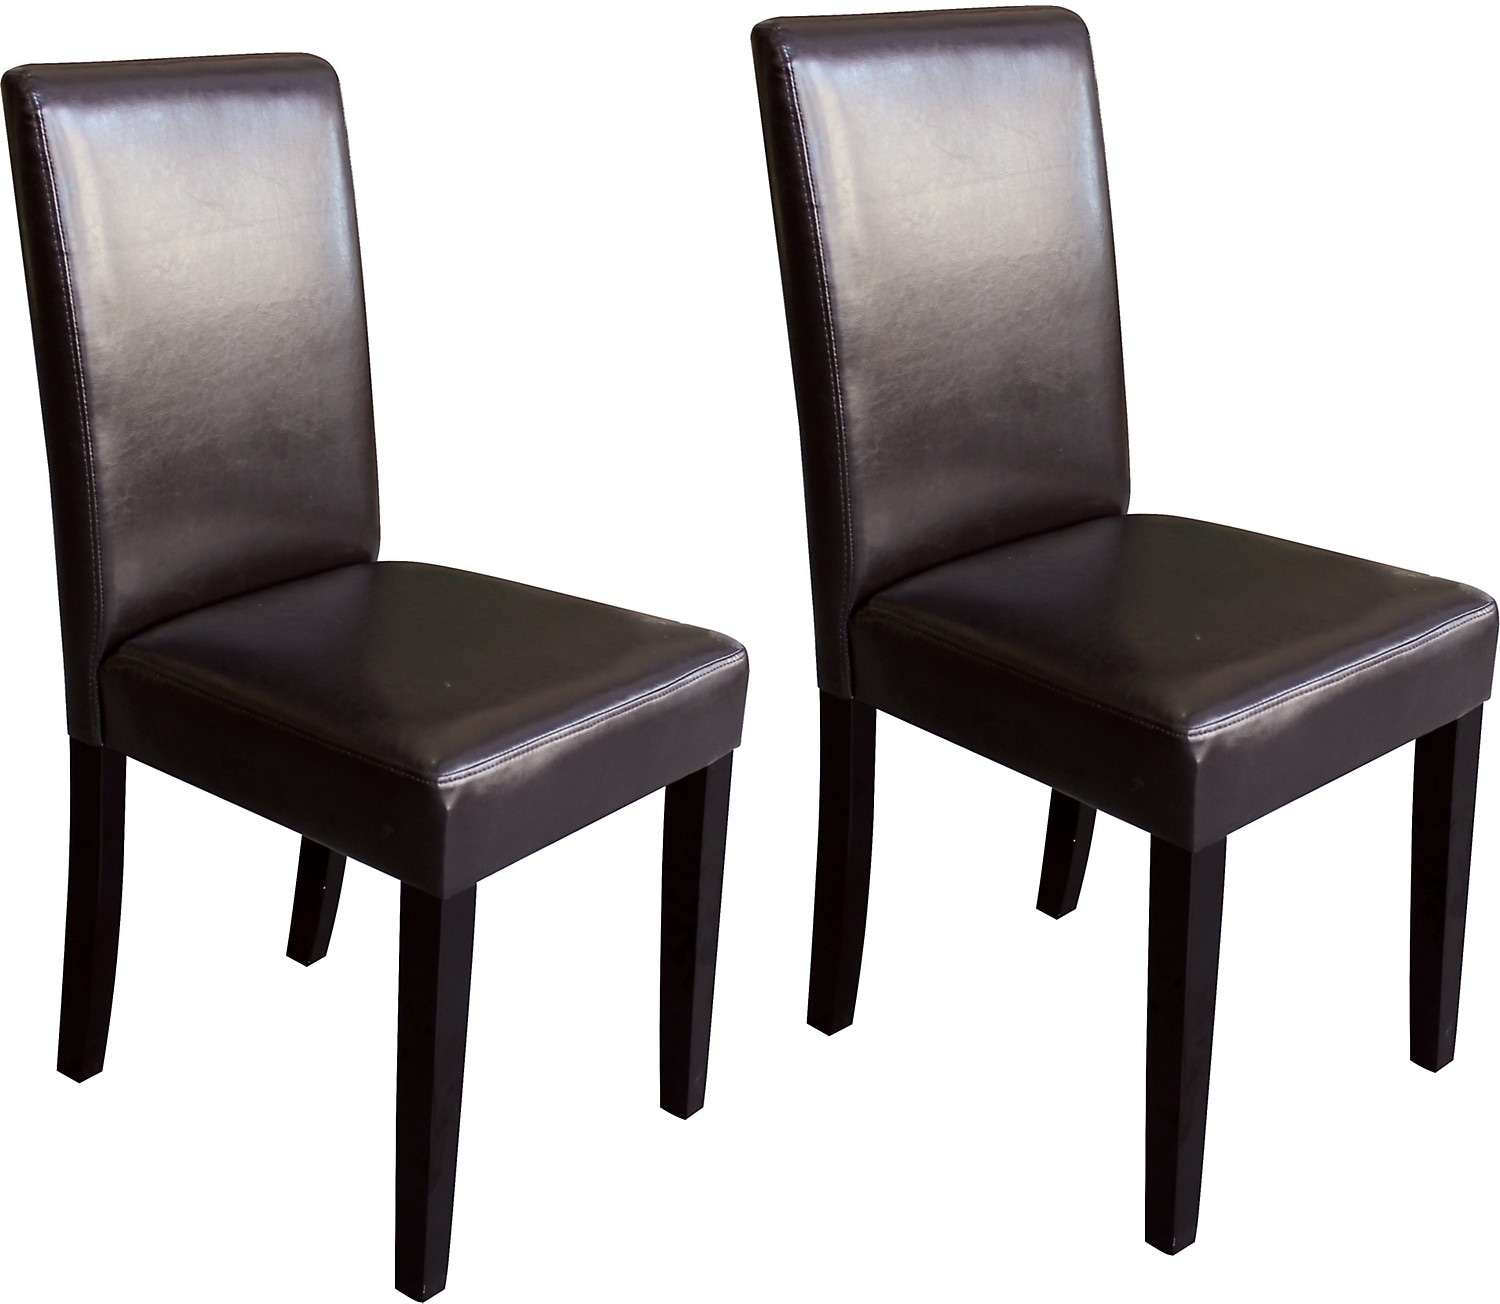 Brown 2-Piece Accent Dining Chair Set